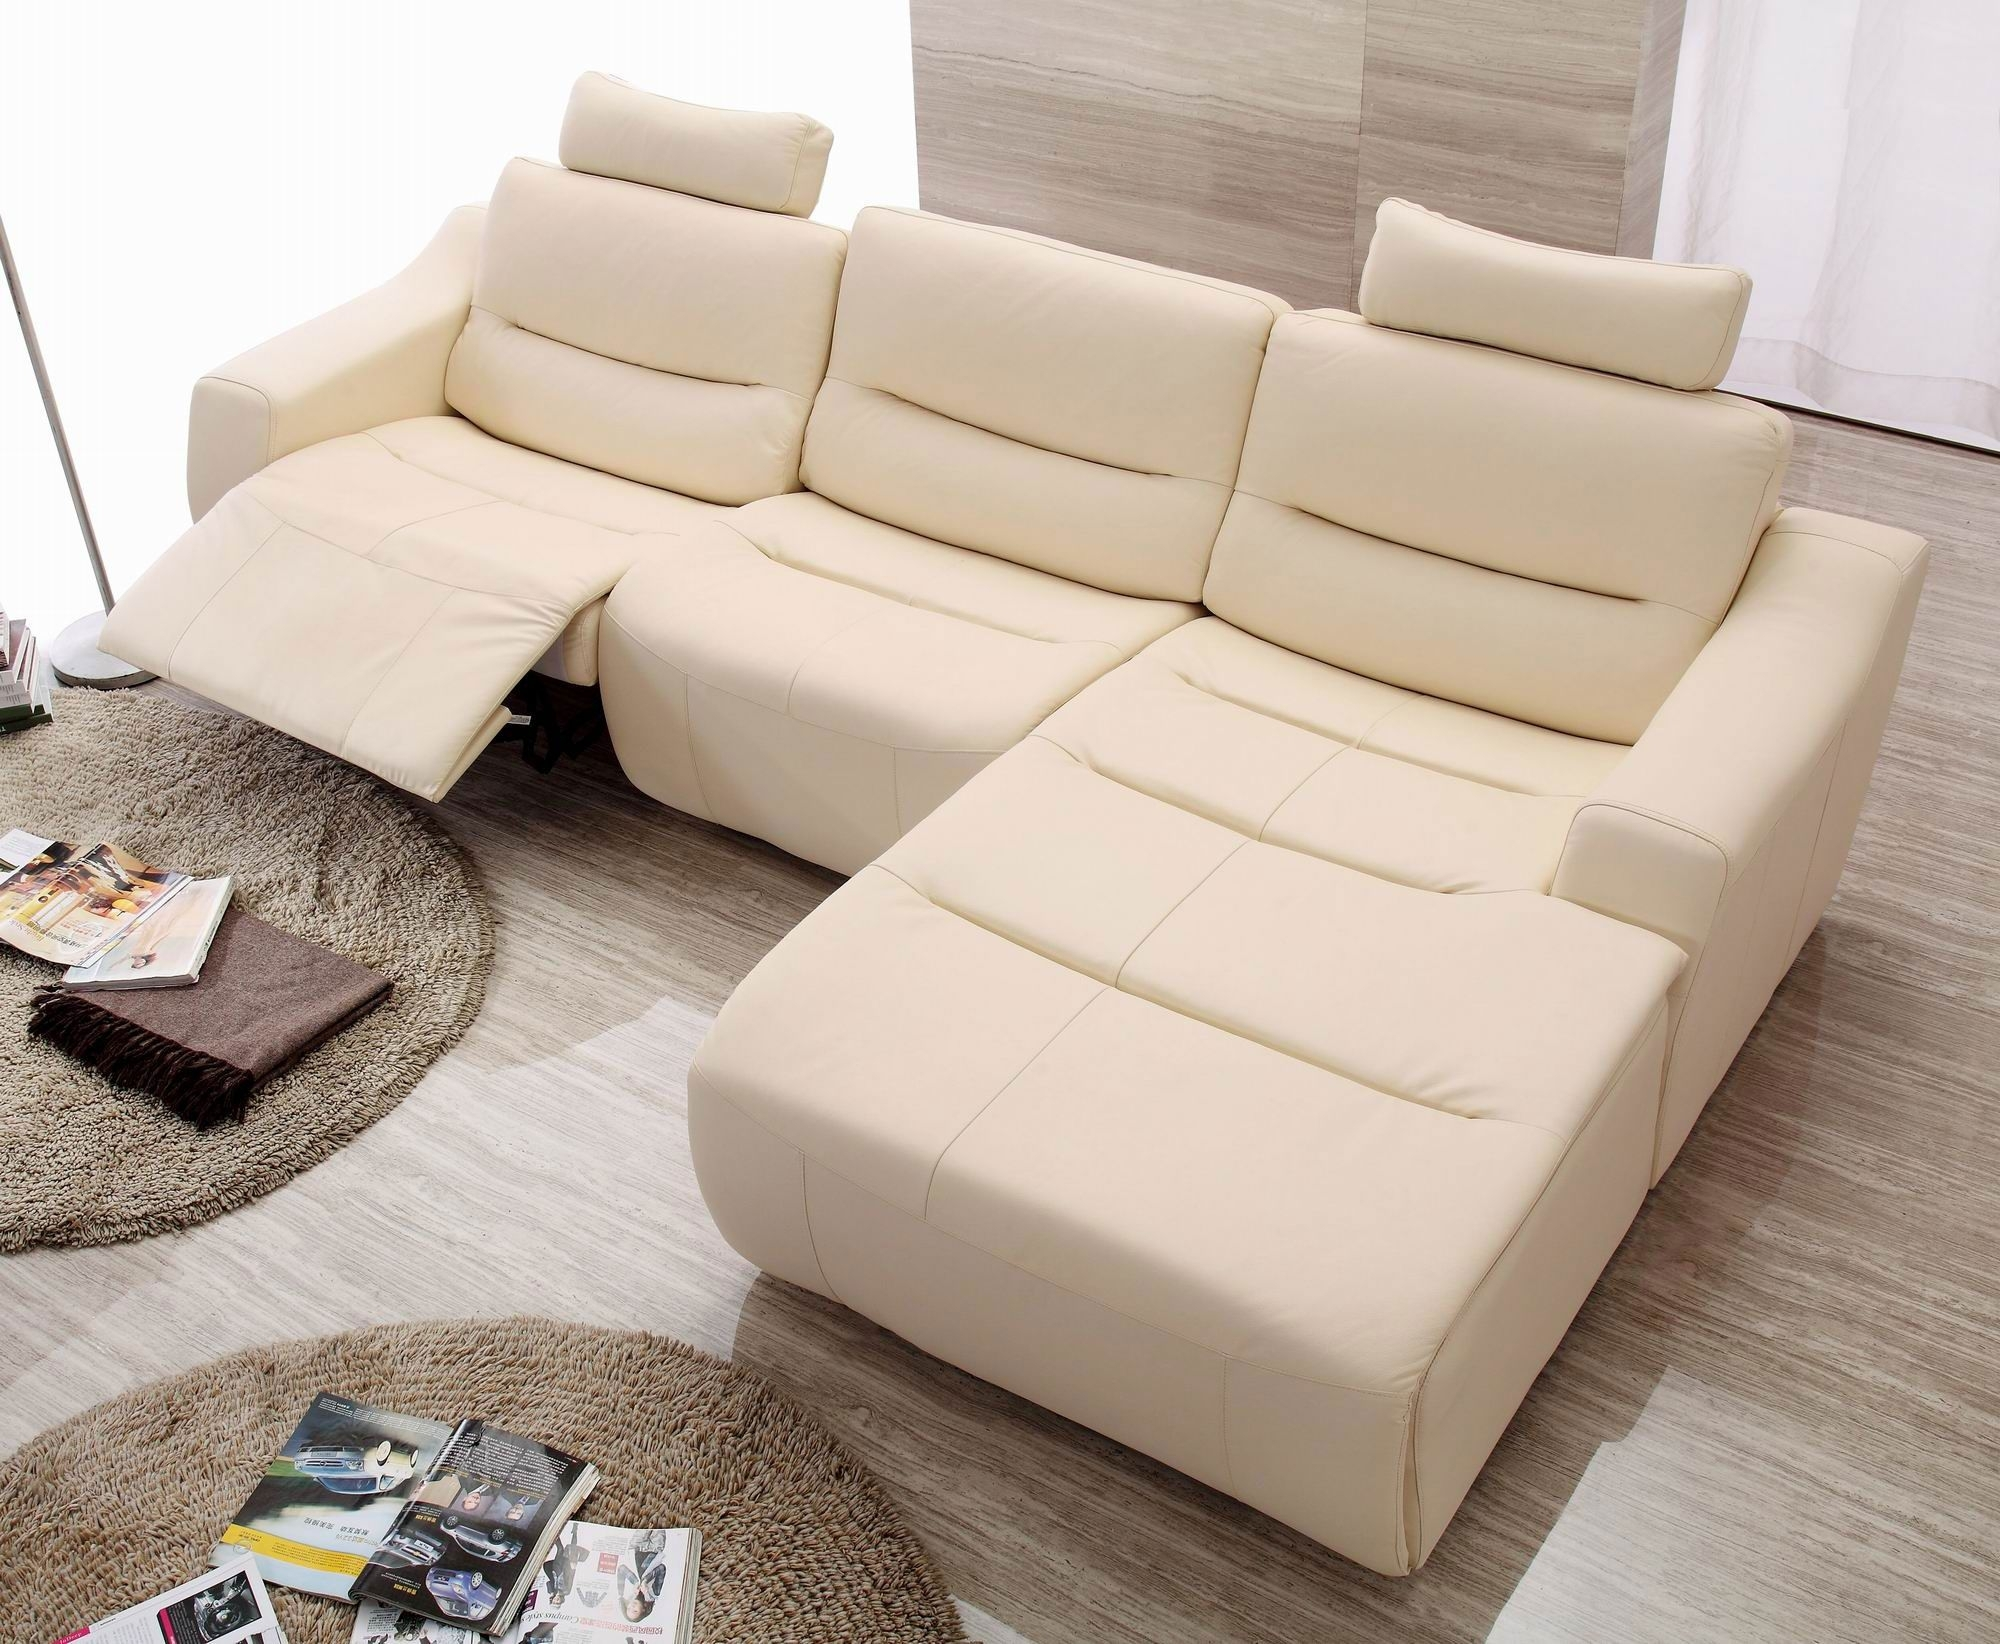 Beige Leather Reclining Sofa | Baci Living Room in Clyde Saddle 3 Piece Power Reclining Sectionals With Power Headrest & Usb (Image 6 of 30)